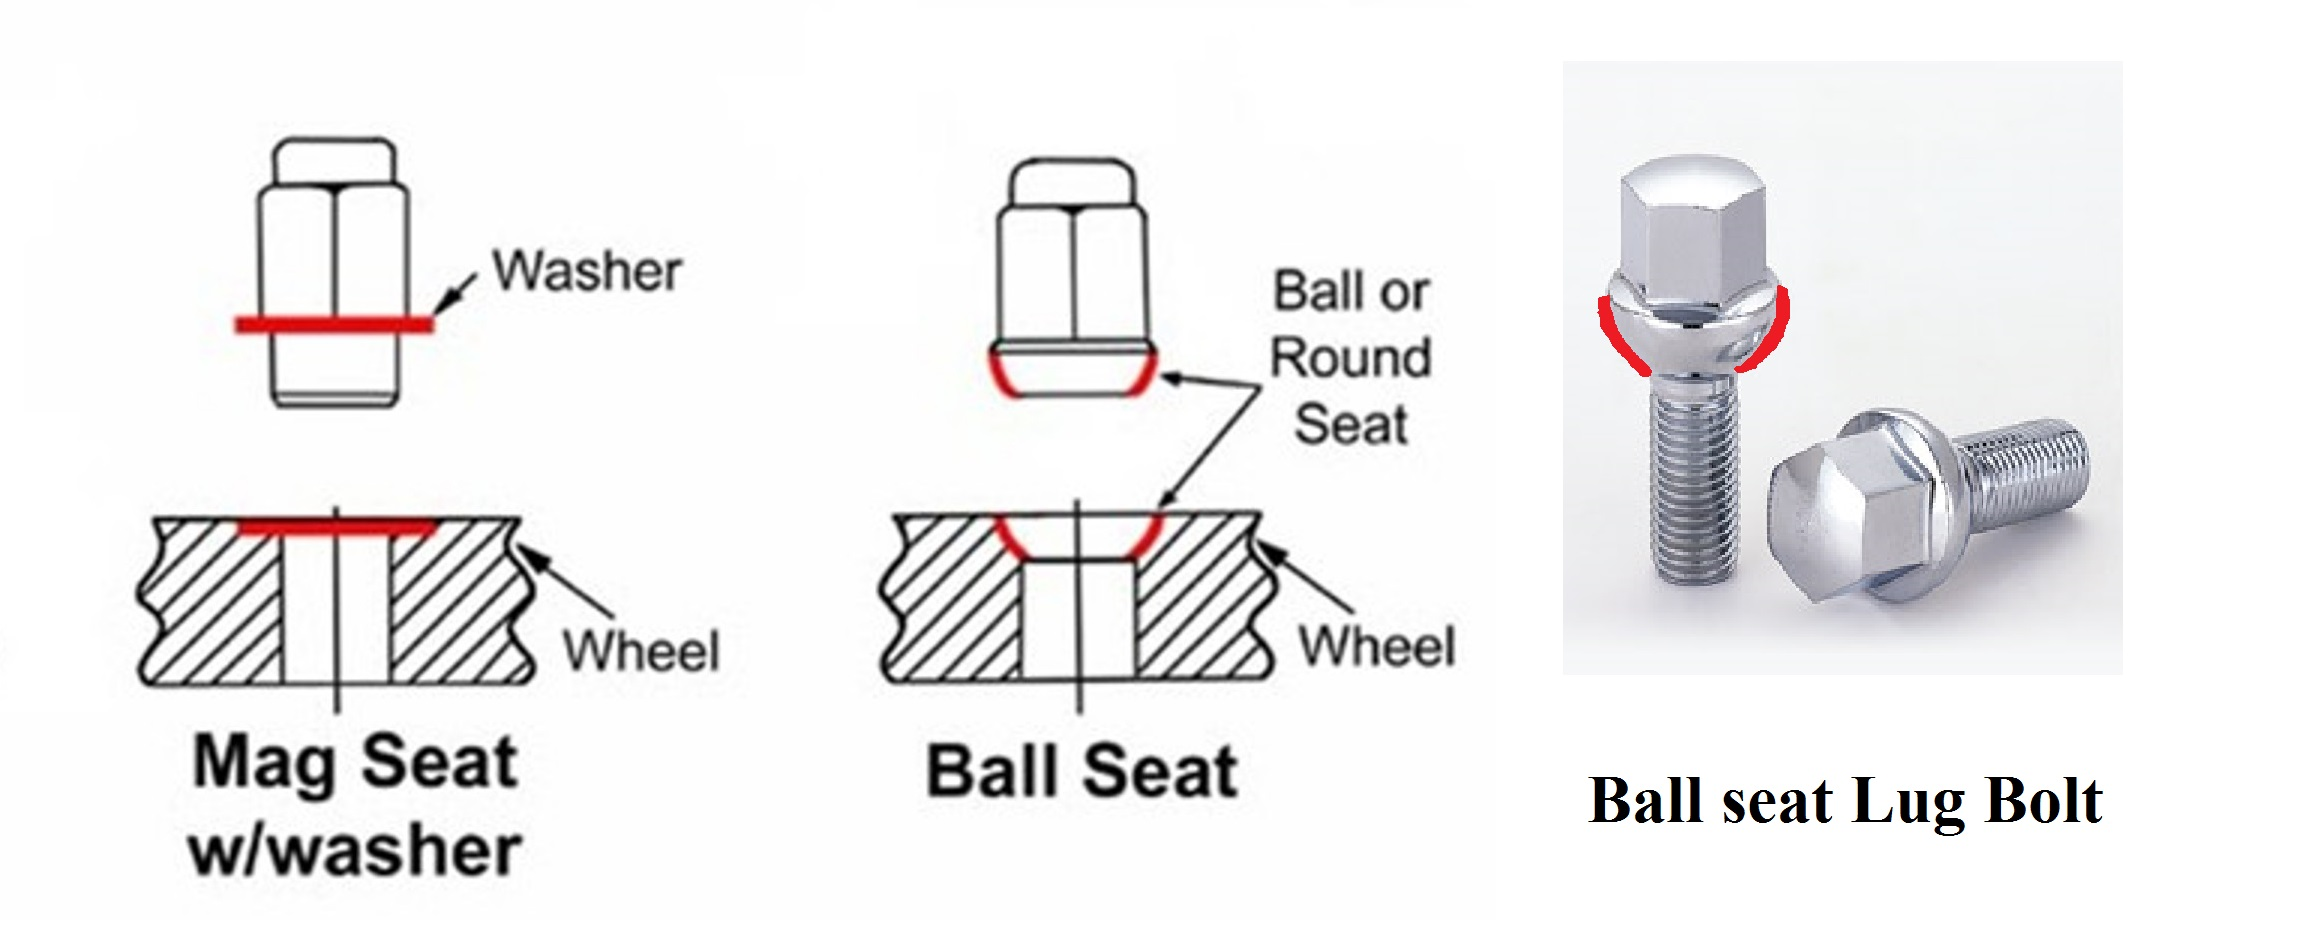 lug-seat-diagram2.jpg